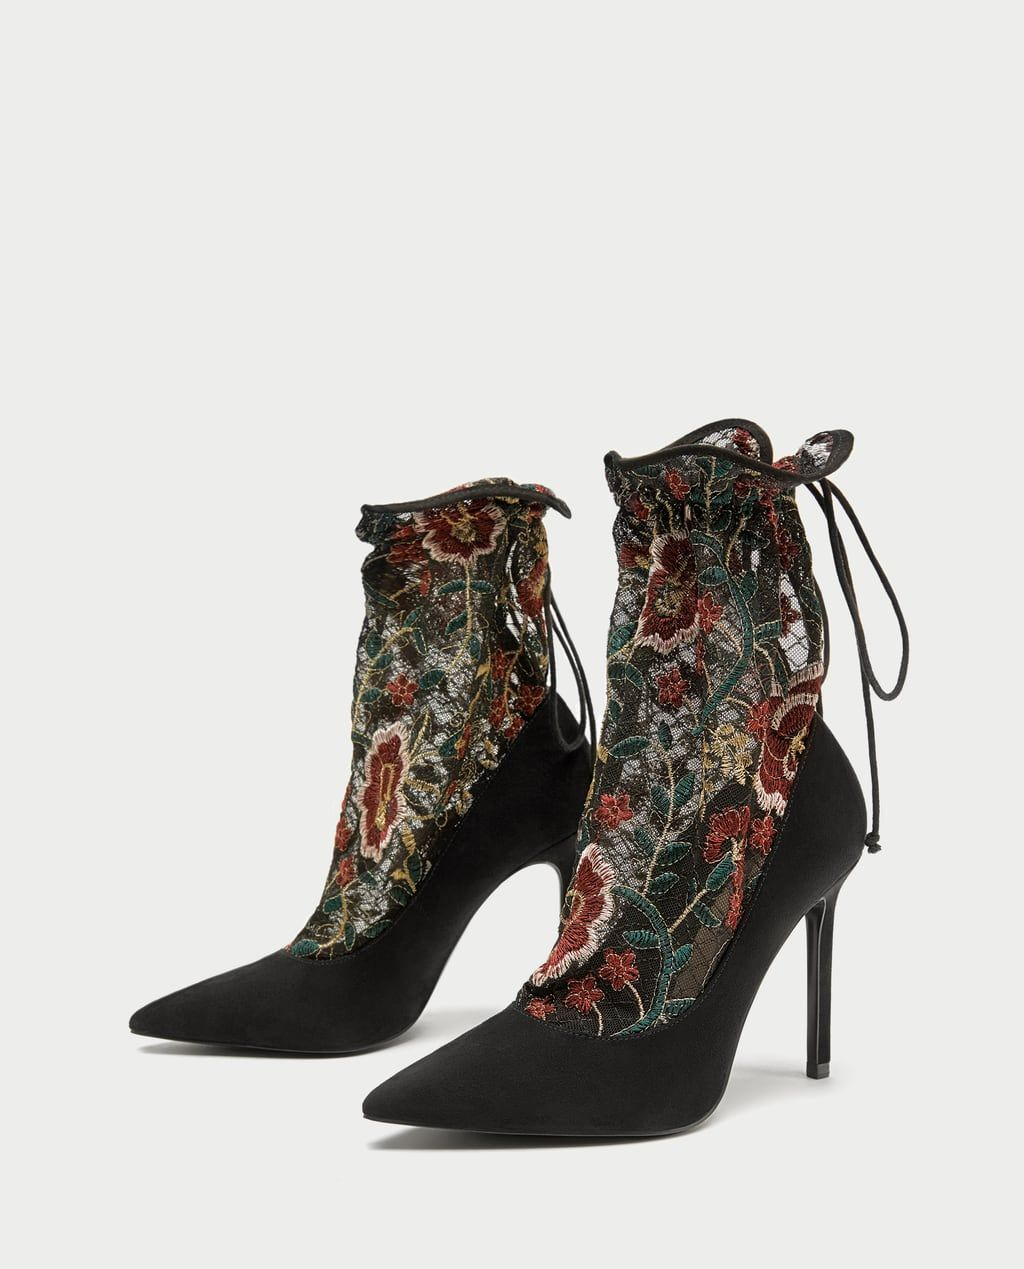 0ac24b1c0bb ZARA - WOMAN - EMBROIDERED STOCKING-STYLE HIGH HEEL COURT SHOES